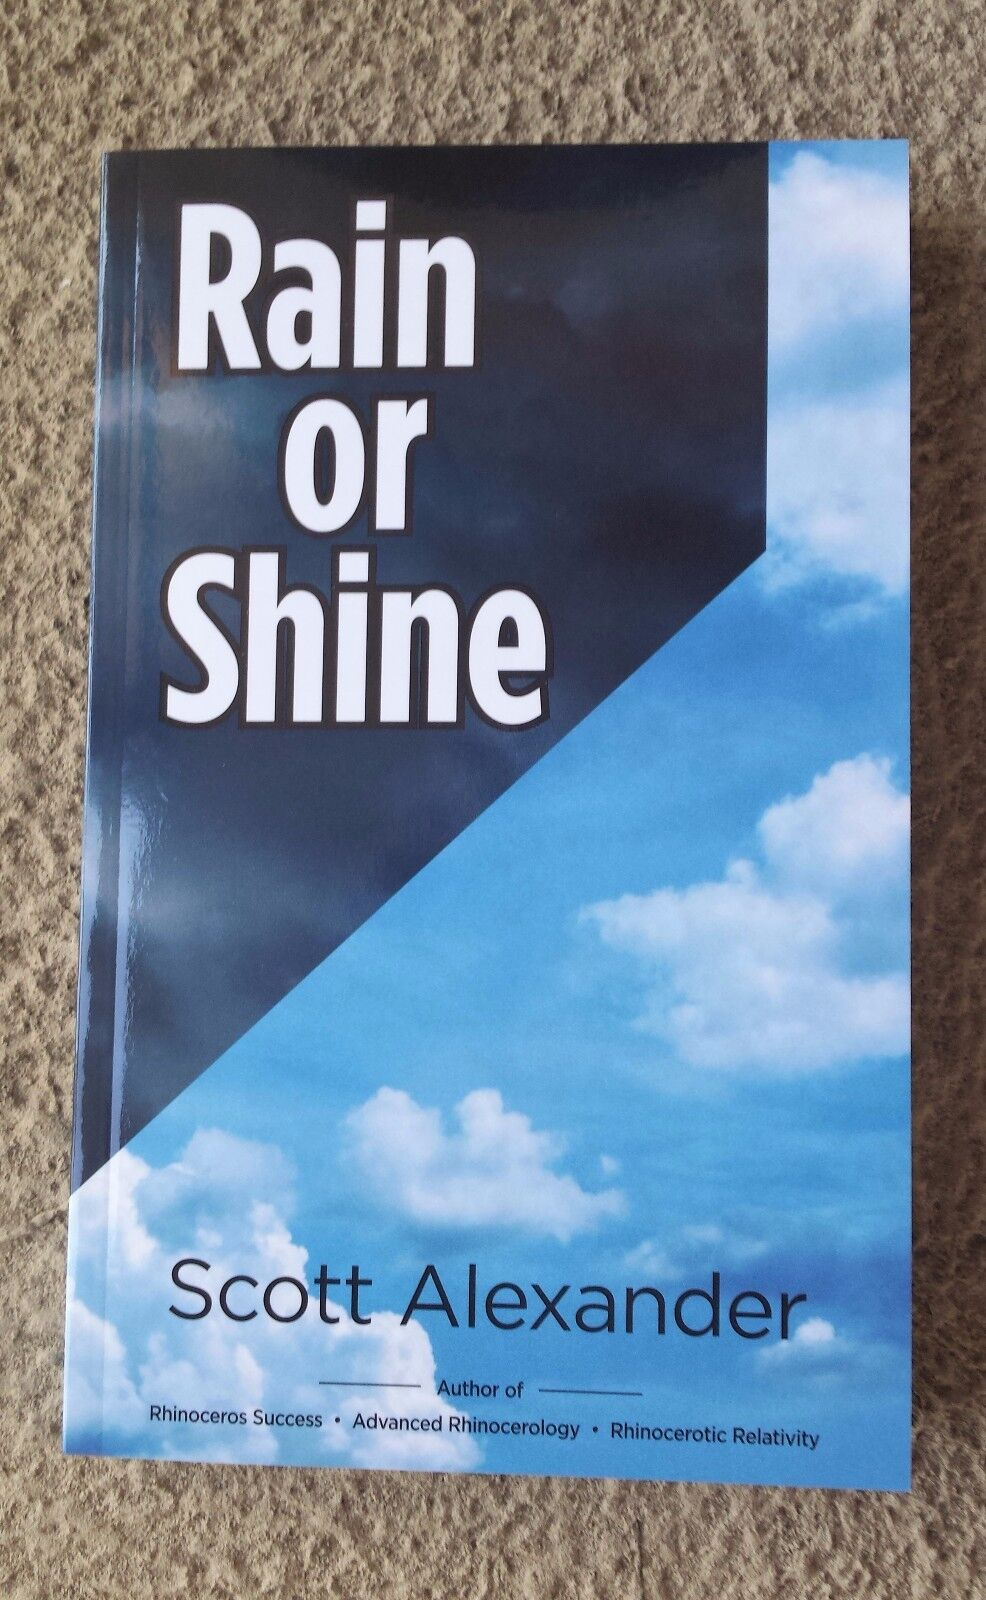 Rain Or Shine By Author Of Rhinoceros Success, Scott Alexander. New! Autographed